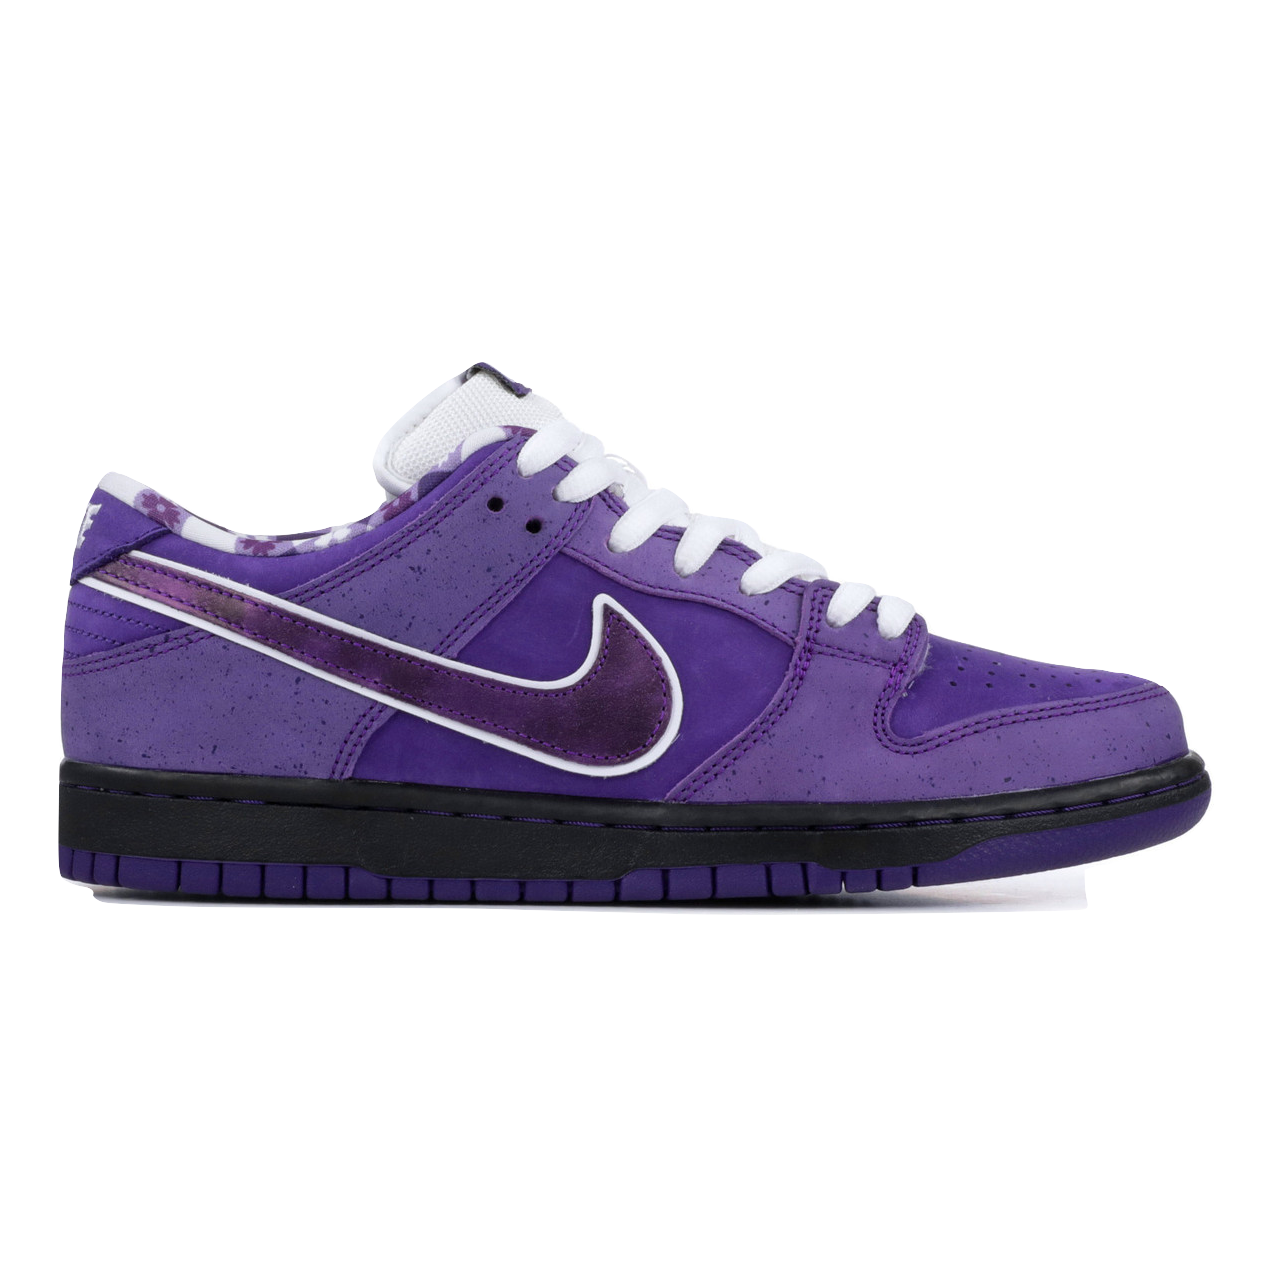 Nike SB Dunk Low Pro OG QS - Purple Lobster - Used